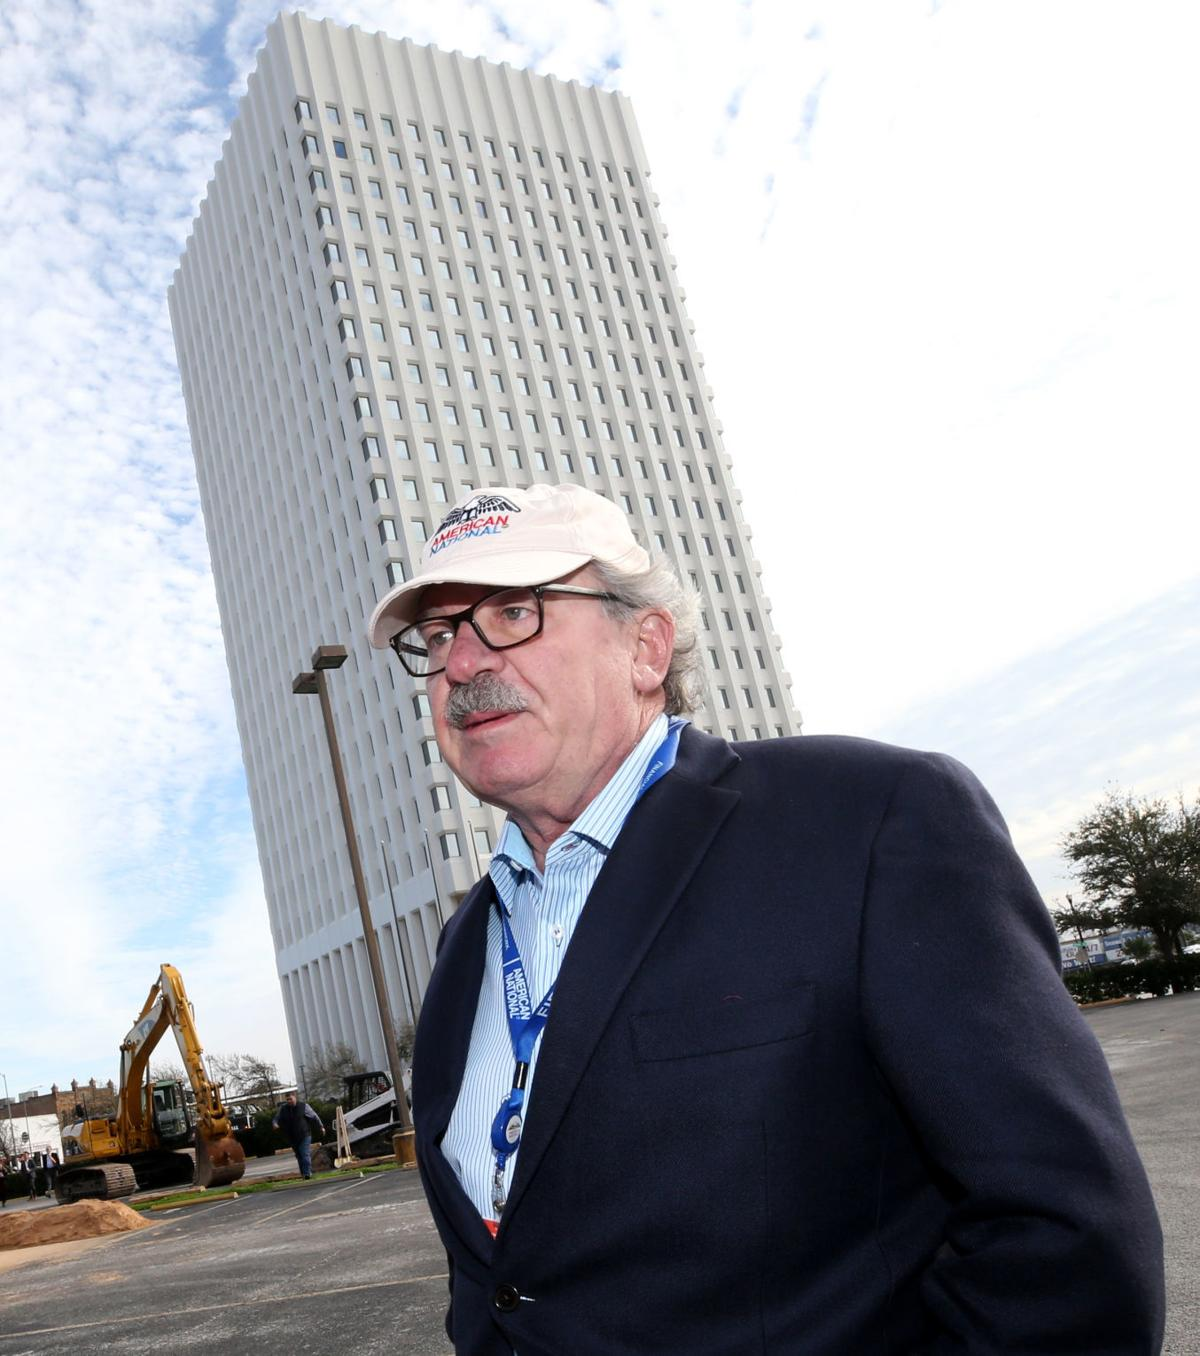 American National Breaks Ground On Parking Garage Plans Major Tower Renovation Biz Buzz The Daily News